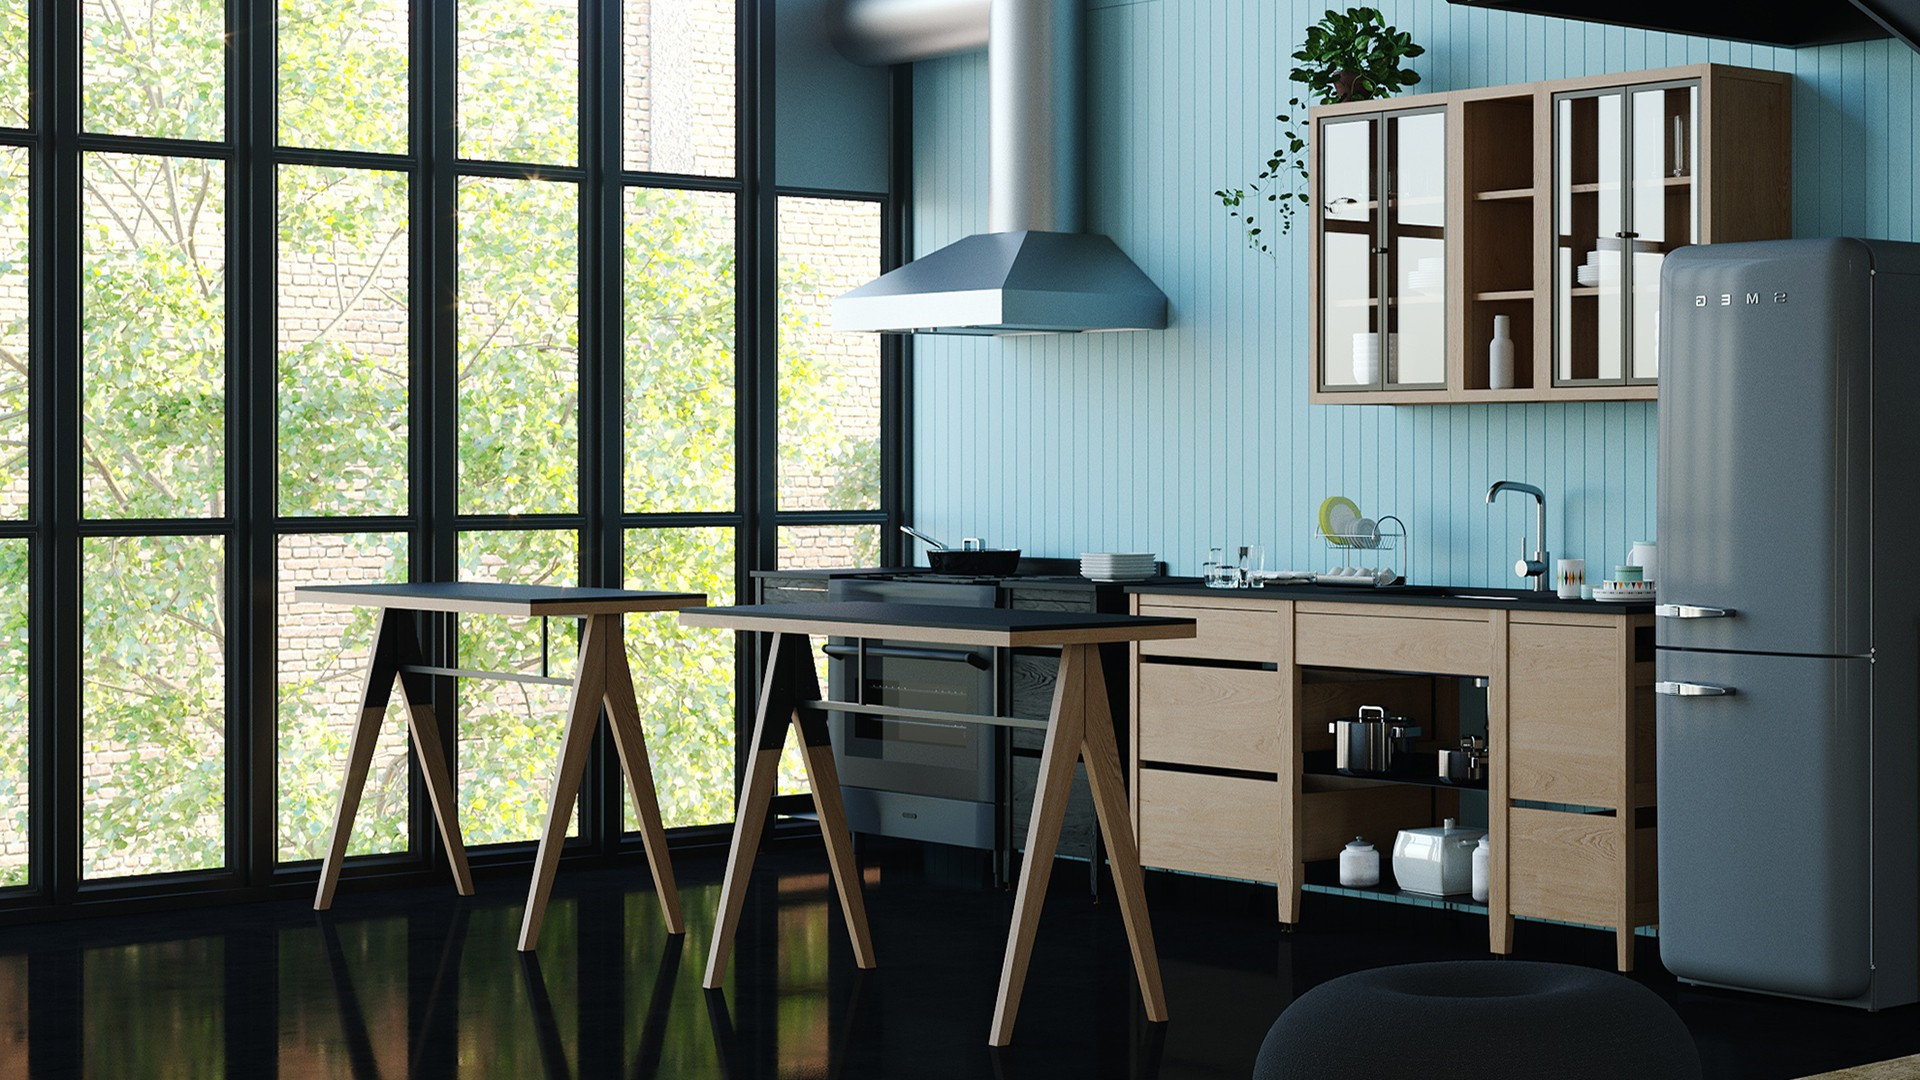 Kitchen Wall Cabinets, with Glass Doors or Open Shelving Units | coquo